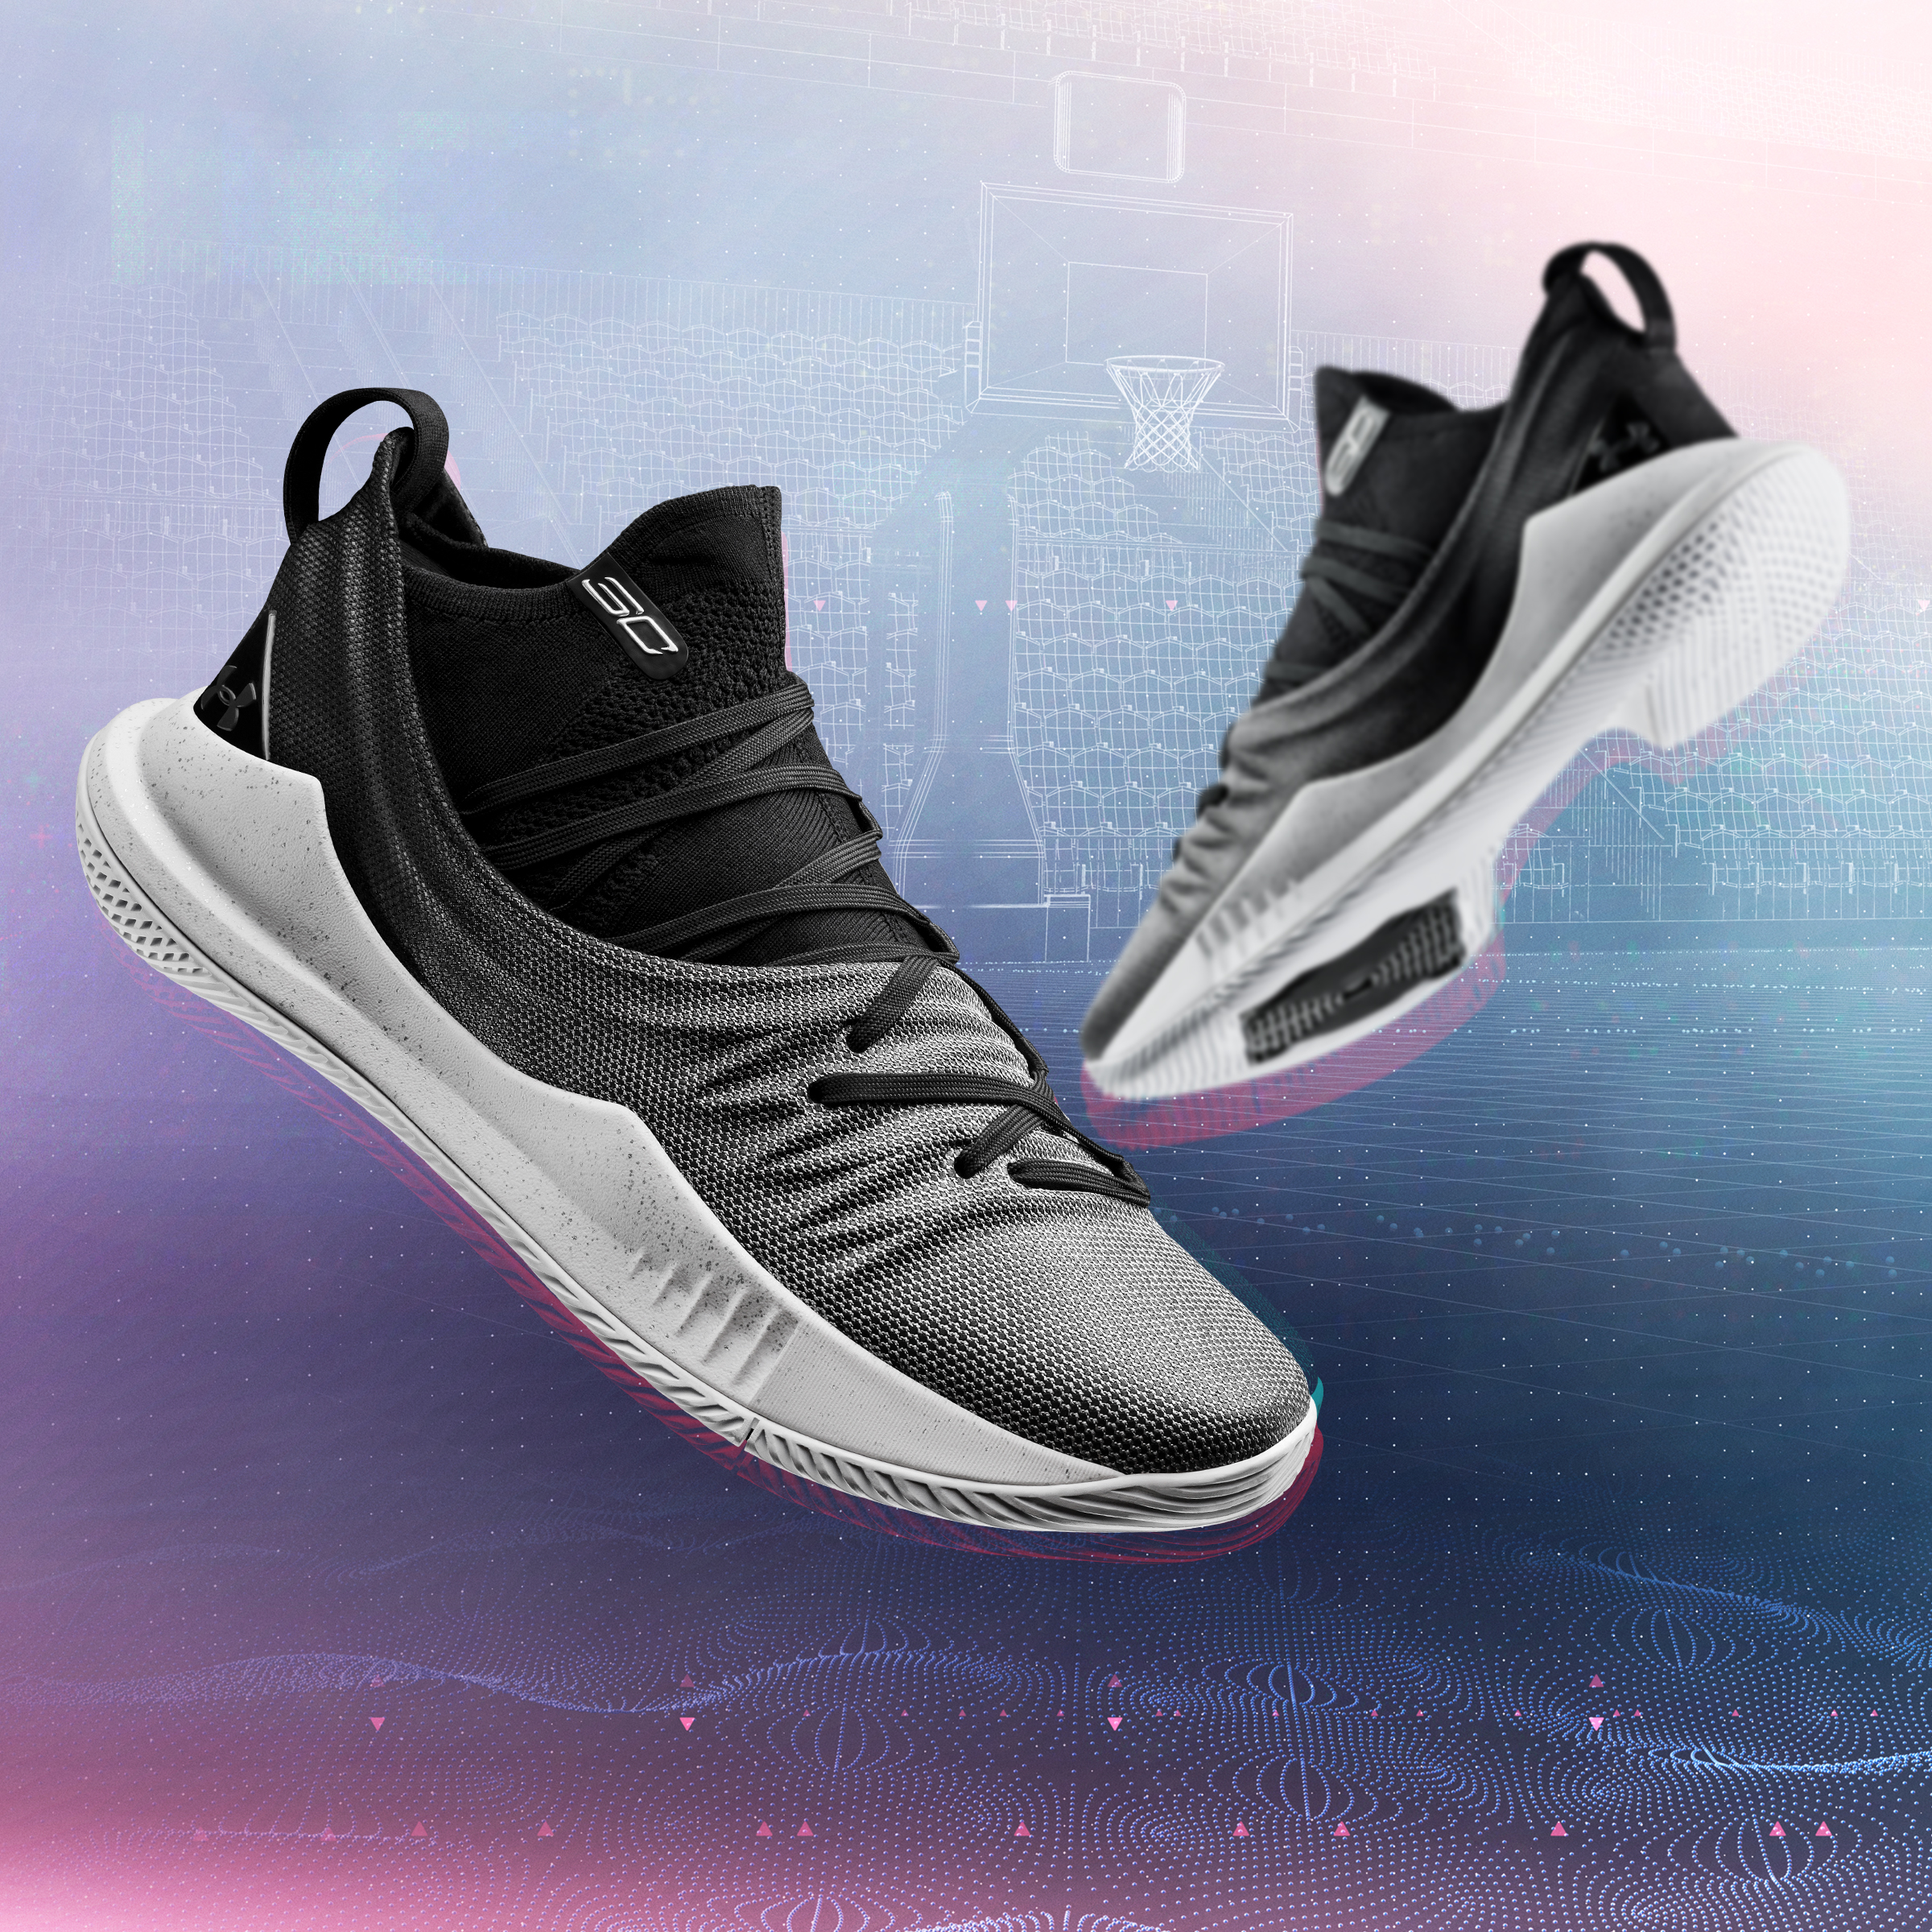 be14cb3d10d Under Armour releases its latest Curry 5 colorway design